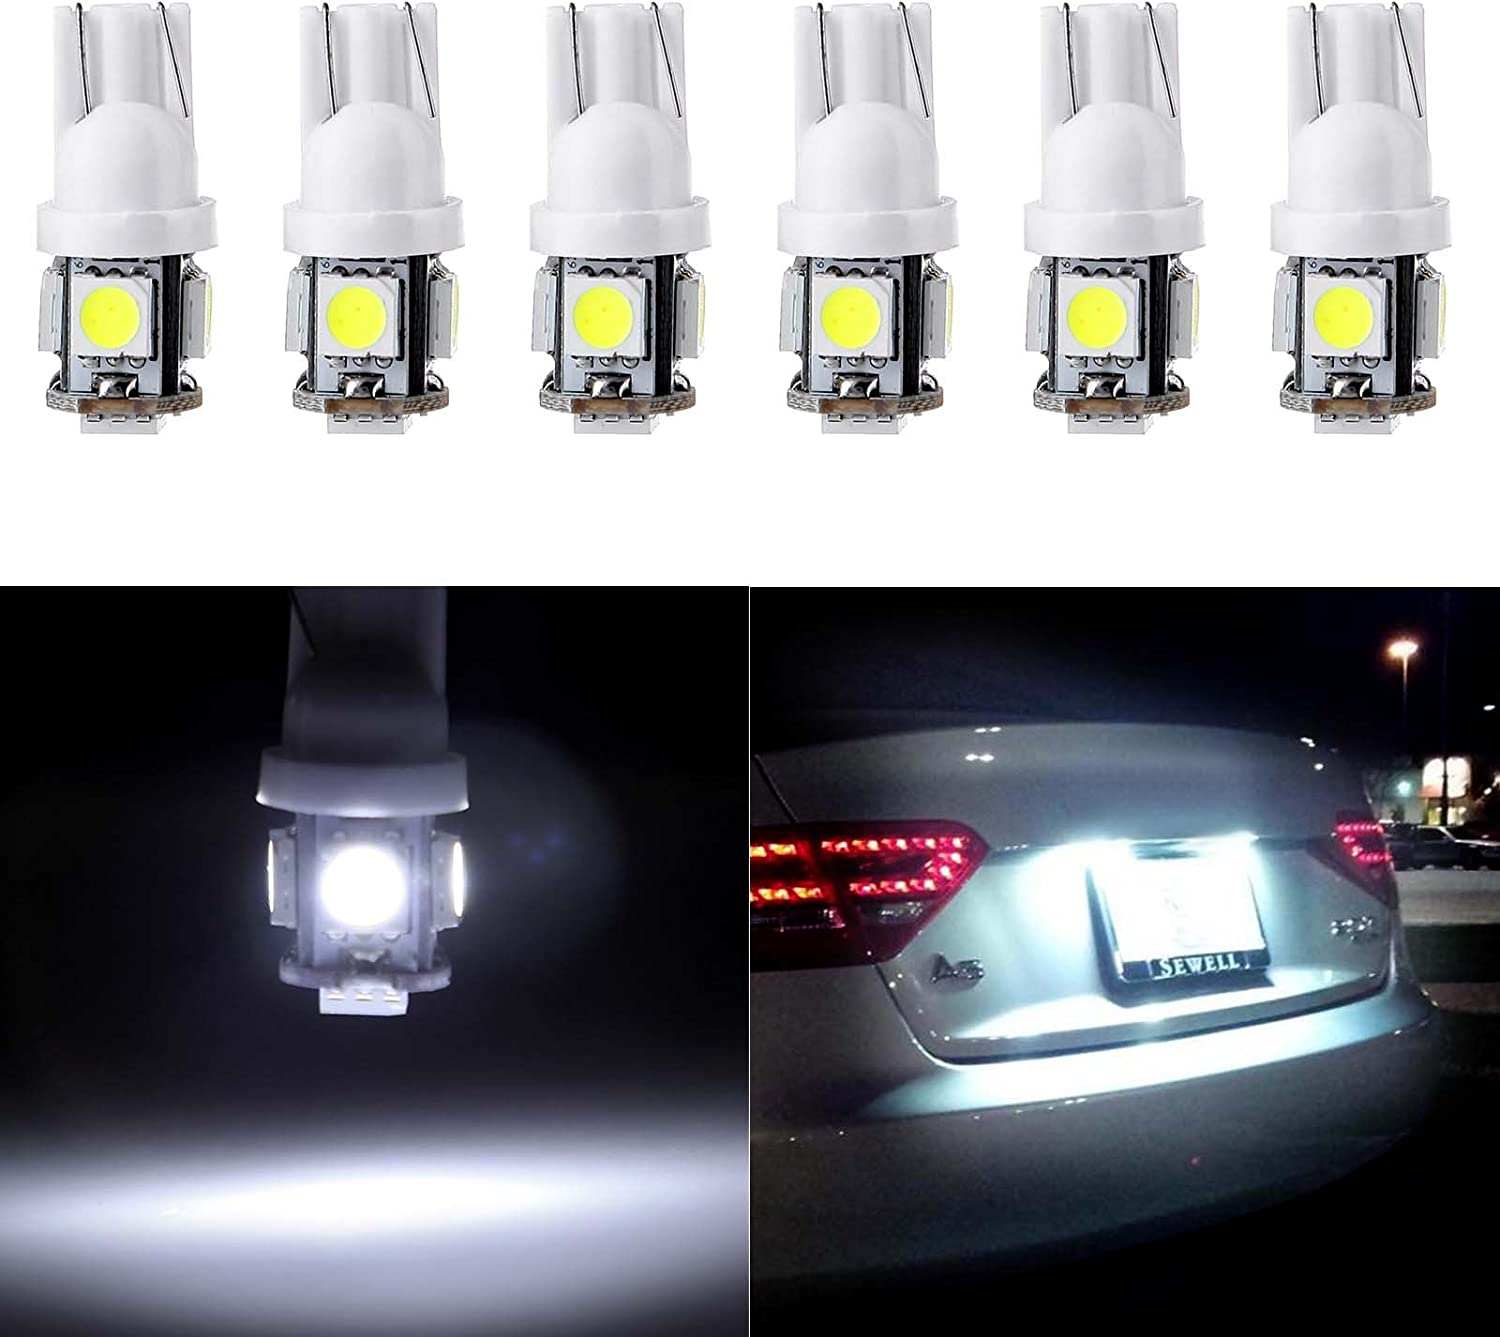 cciyu License Plate Light, T10 W5W Wedge 168 194 LED Bulb for Interior Dome Map Lights Courtesy Light 6000K Xenon White,6Pack